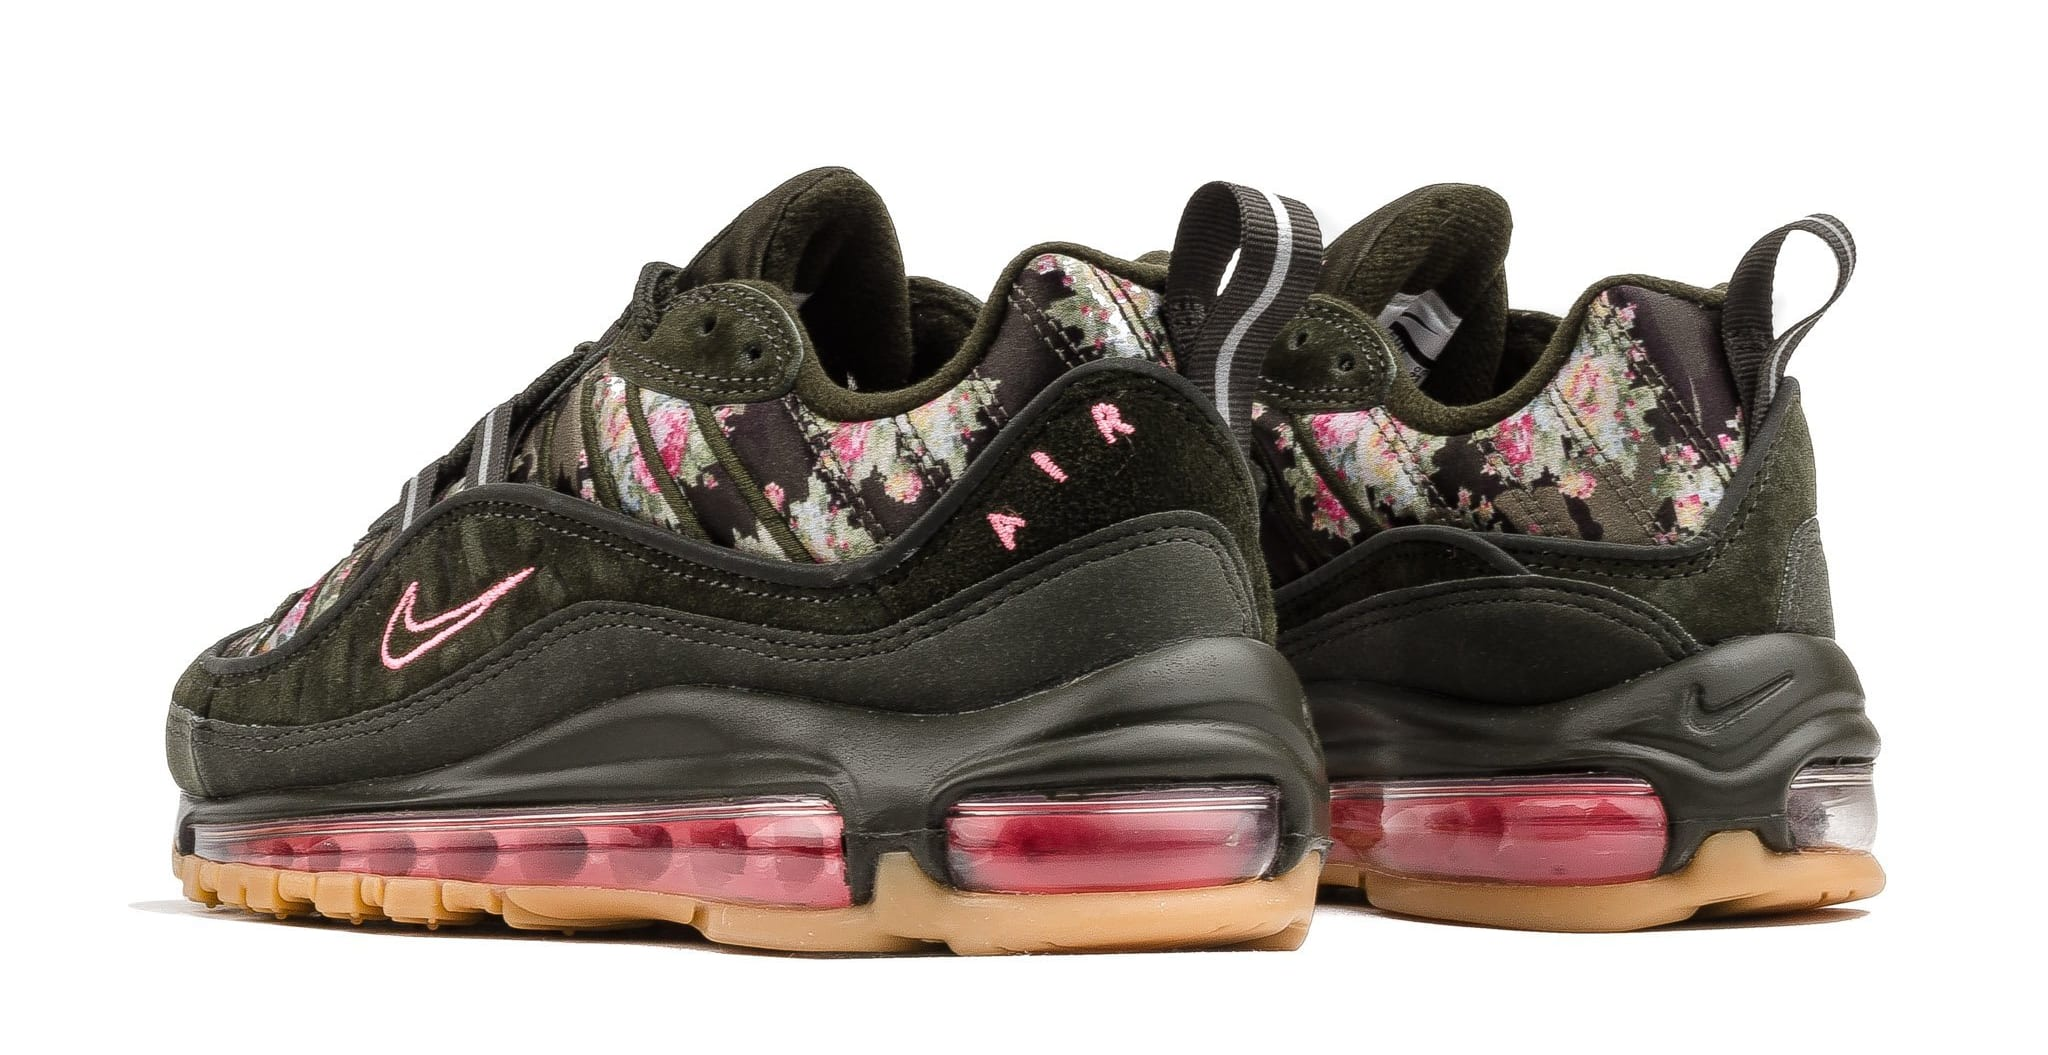 WMNS Nike Air Max 98 'Sequoia' AQ6488-300 (Heel)